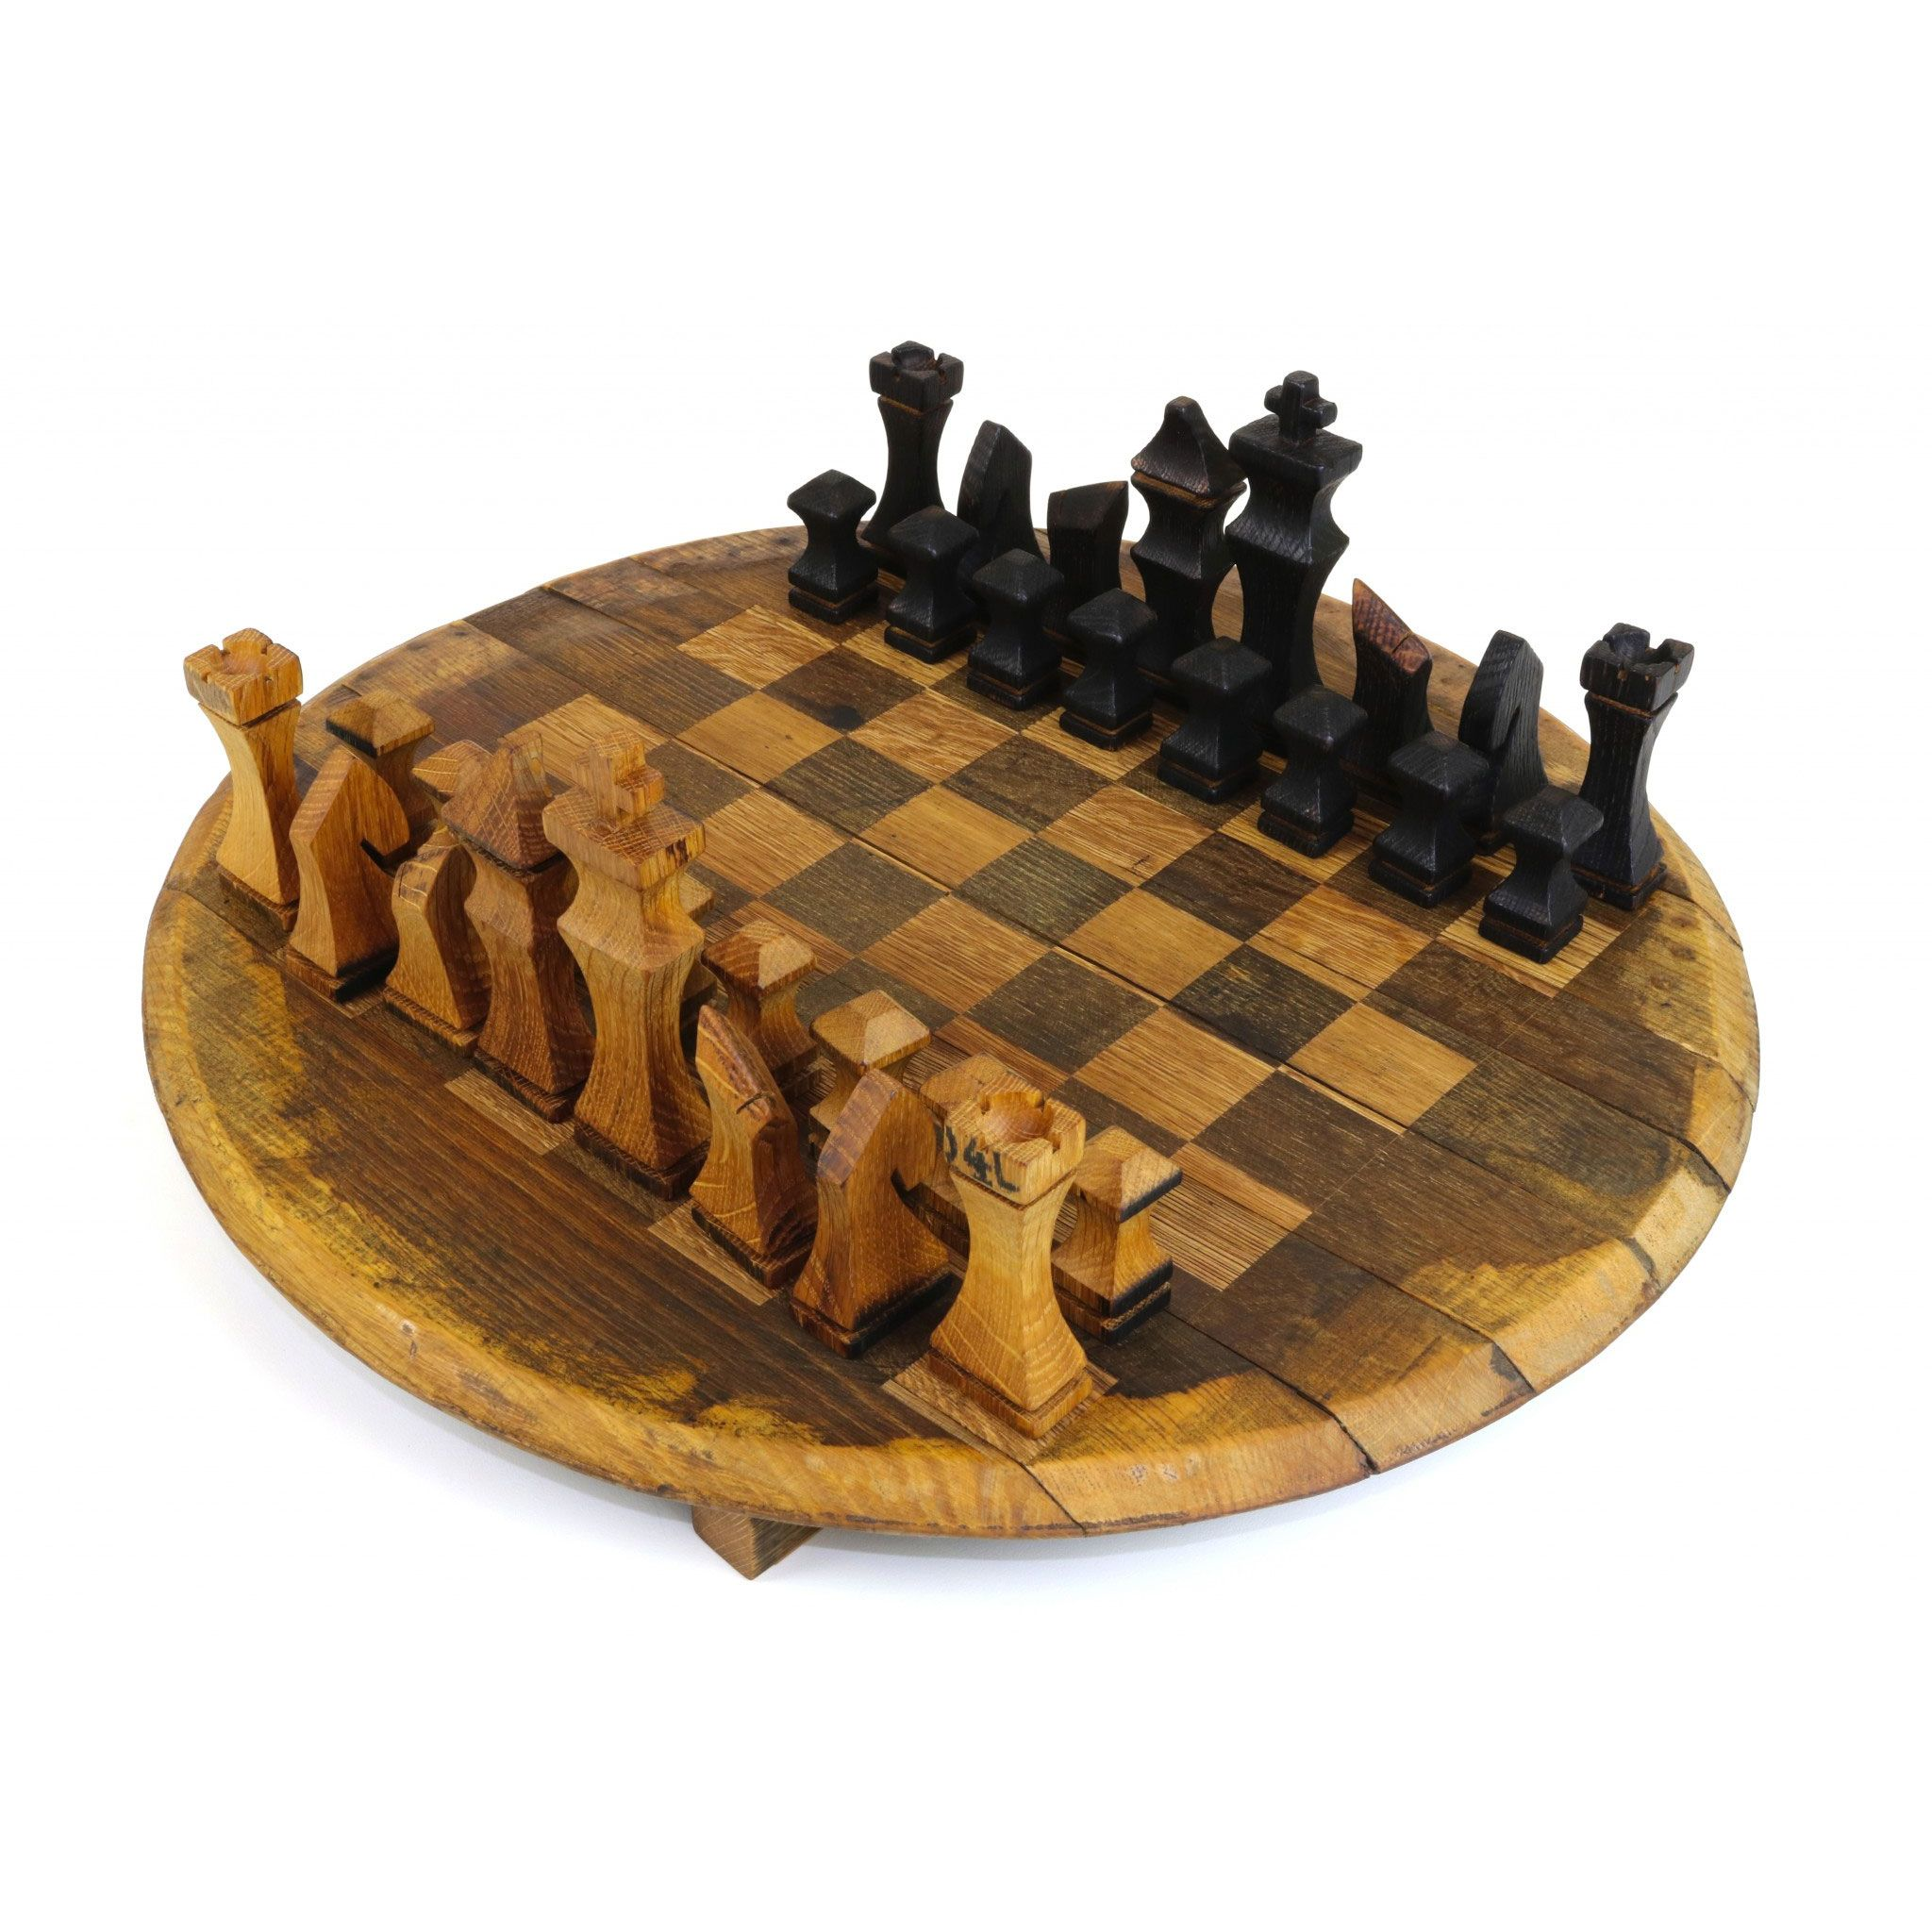 Superior The Bourbon Barrel Chess Set Is Made Of 100% Used And Reclaimed Barrels. An  Eco Friendly Art Piece That Will Be Loved And Enjoyed By Both Whiskey  Lovers And ...